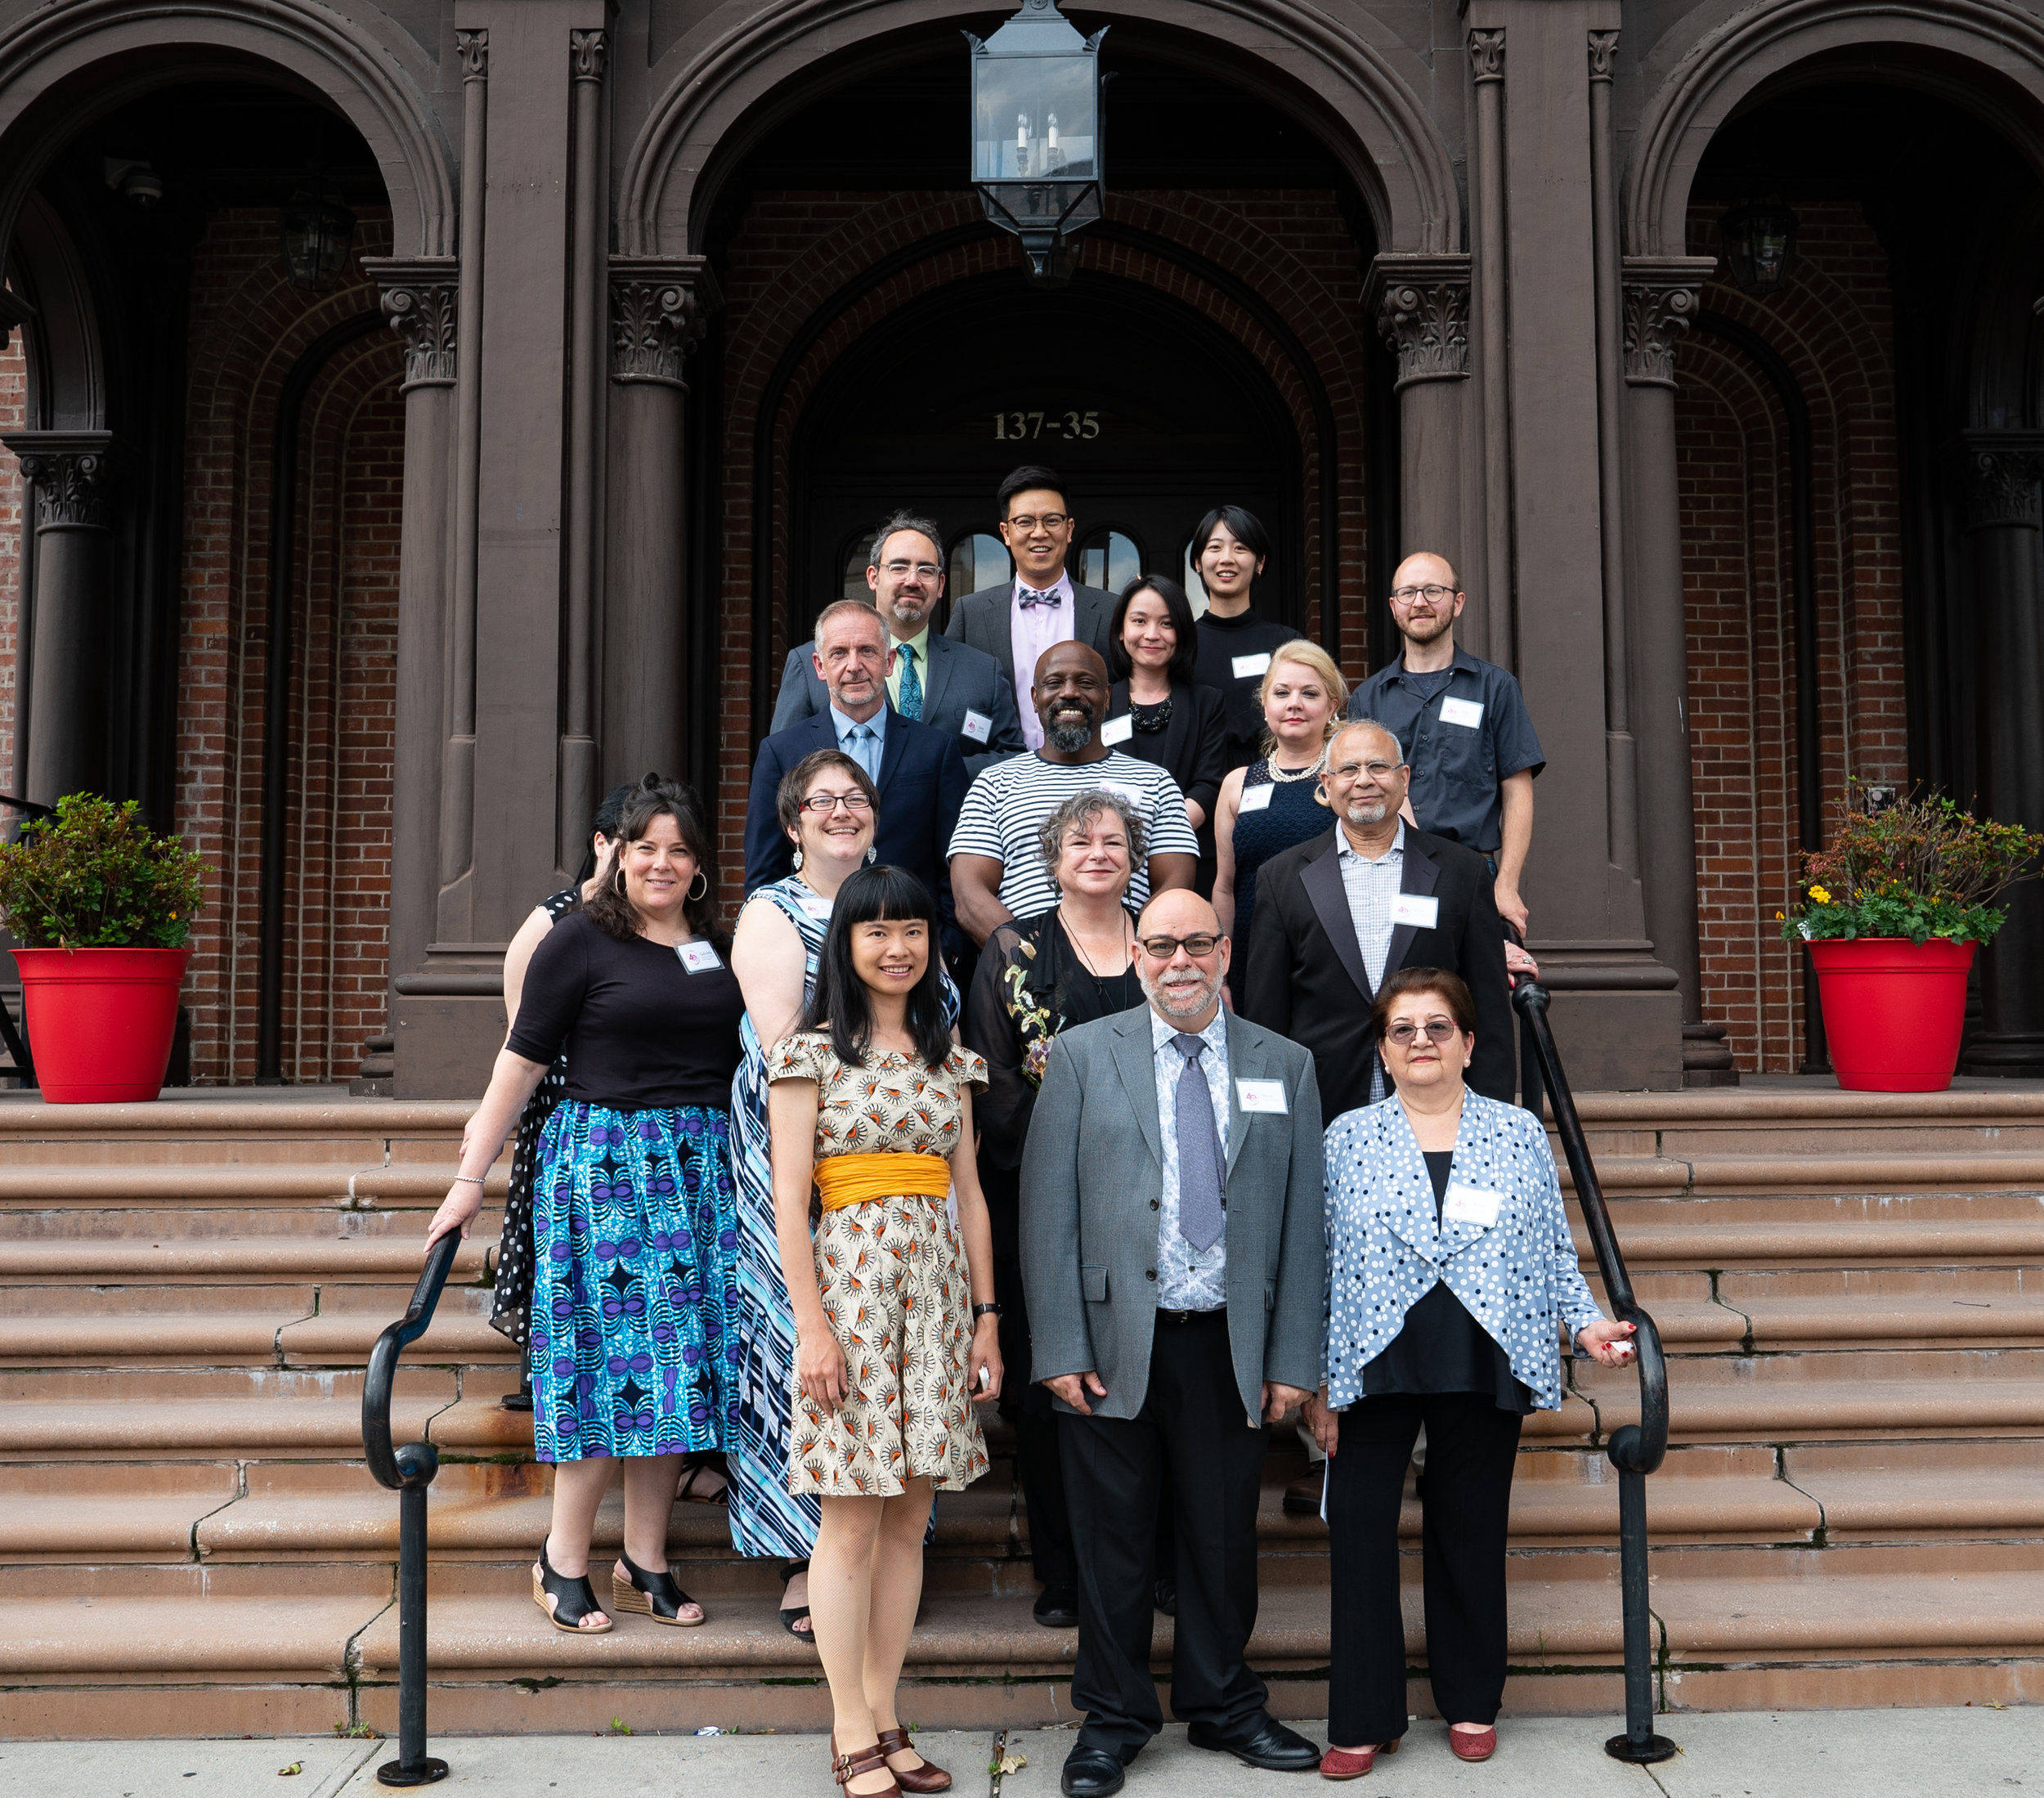 Flushing Town Hall held its 40th annual gala on June 6, 2019. Pictured are staff members on the steps of the landmark institution.